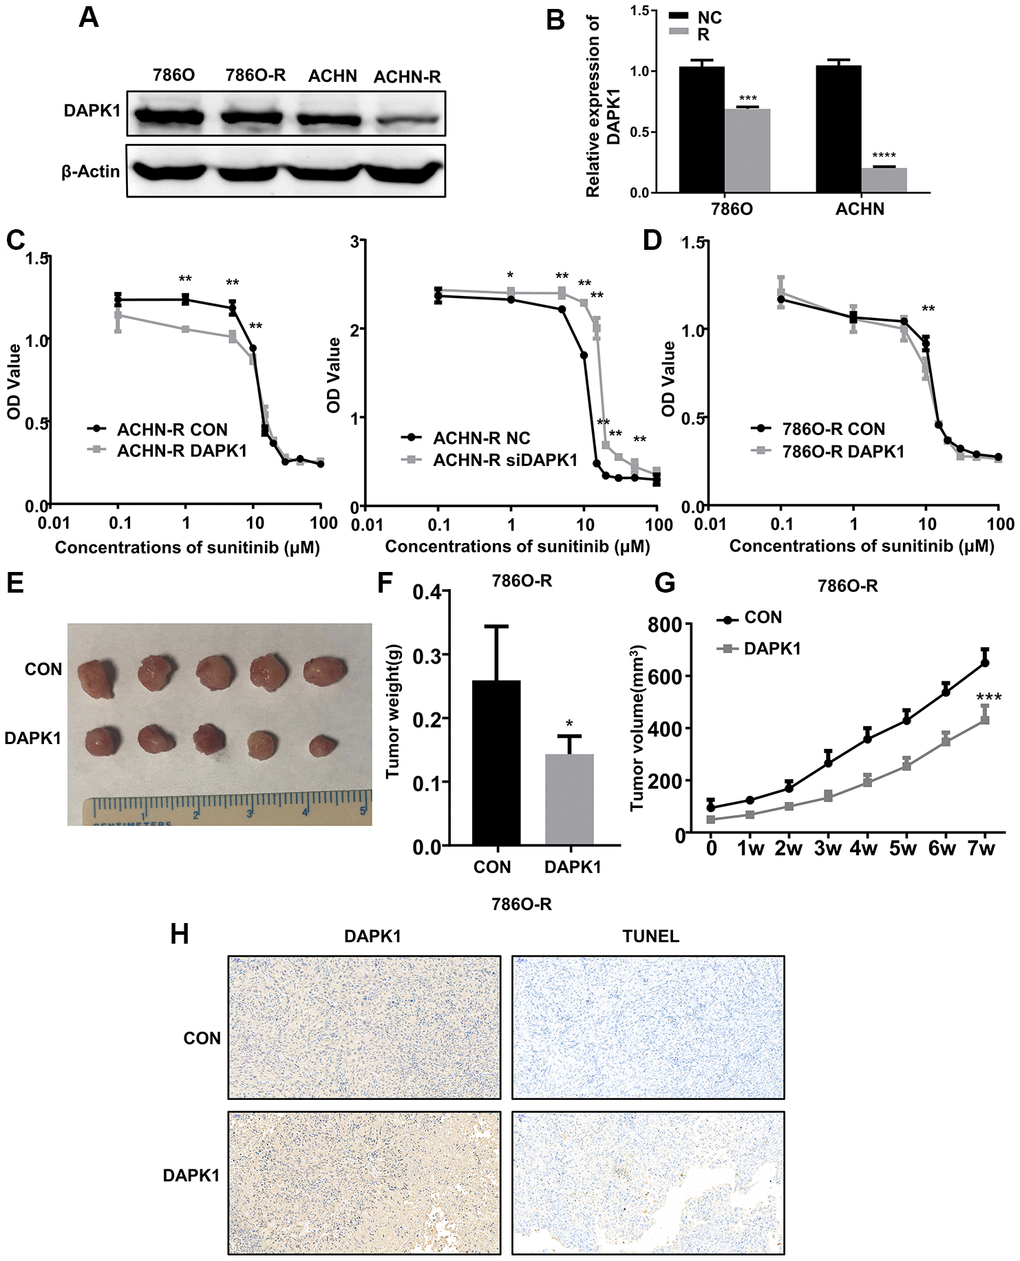 DAPK1 overexpression in the sunitinib-resistant ccRCC cells reduces the growth of xenograft tumors in the nude mice model. (A, B) Western blot analysis shows DAPK1 protein expression in parental (786-O and ACHN) and sunitinib-resistant (786O-R and ACHN-R) ccRCC cells. GAPDH is used as internal control. (C) CCK-8 assay results show the growth rate of control-ACHN-R, DAPK1-overexpressing ACHN-R, and DAPK1-knockdown ACHN-R cells that are treated with different concentrations of sunitinib. (D) CCK-8 assay results show the growth rate of control and DAPK1 overexpressing 786O-R cells that are treated with different concentrations of sunitinib. The picture (E), average weight (F) and volume (G) of the tumors obtained after 7 weeks of transplanting control and DAPK1 overexpressing 786O-R cells in the nude mice. (H) Immunohistochemical analysis of the xenograft tumors obtained by subcutaneously transplanting control and DAPK1 overexpressing 786O-R cells in nude mice. The bar graphs show the statistical analysis of three independent experiments. Note: The data are shown as means ± SEM. ***p